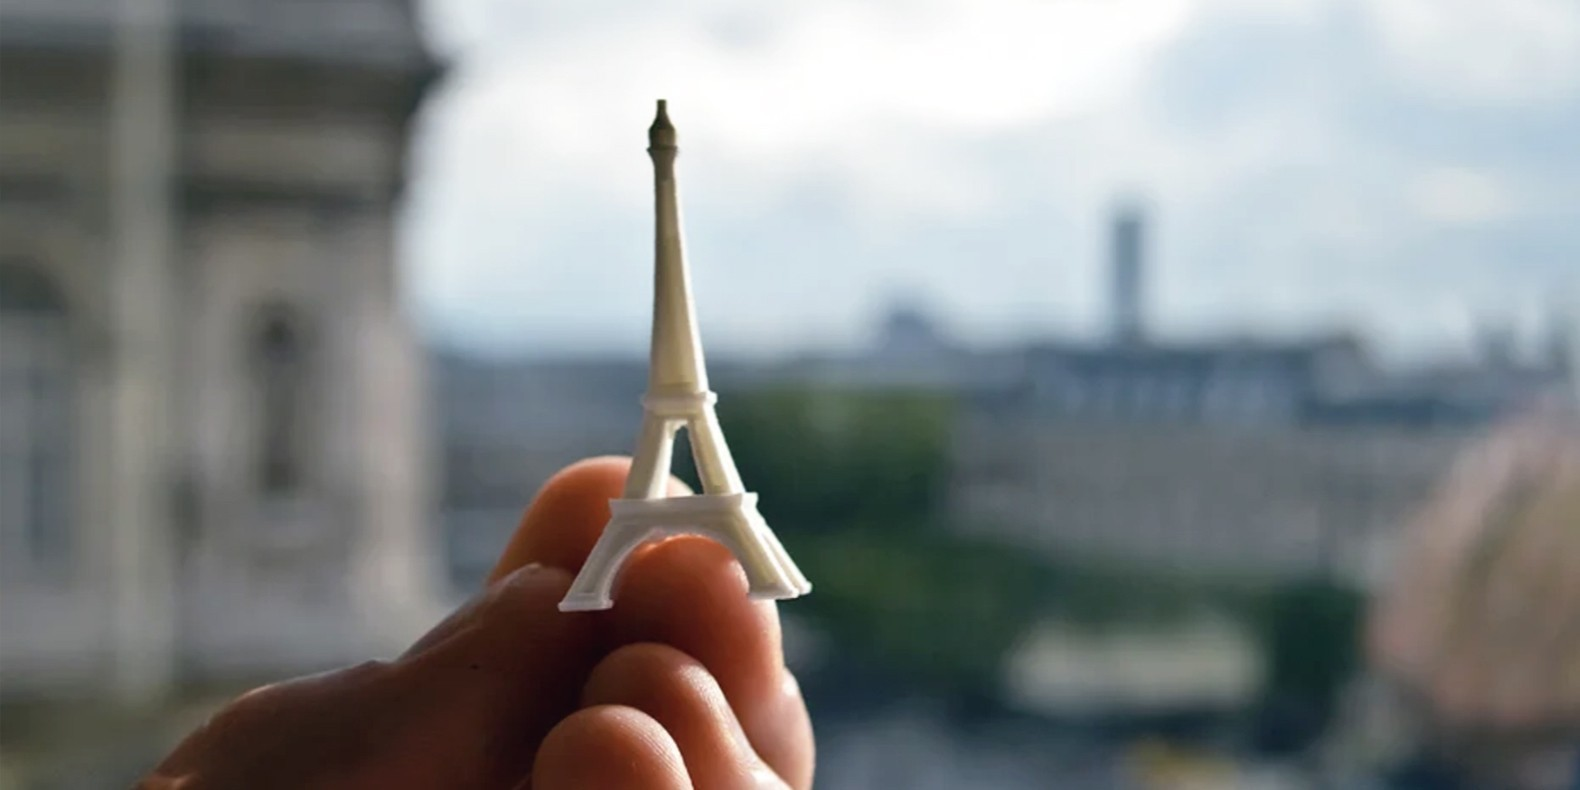 Here is a selection of the best Landmarks Historic Buildings of the World 3D models to make with a 3D printer